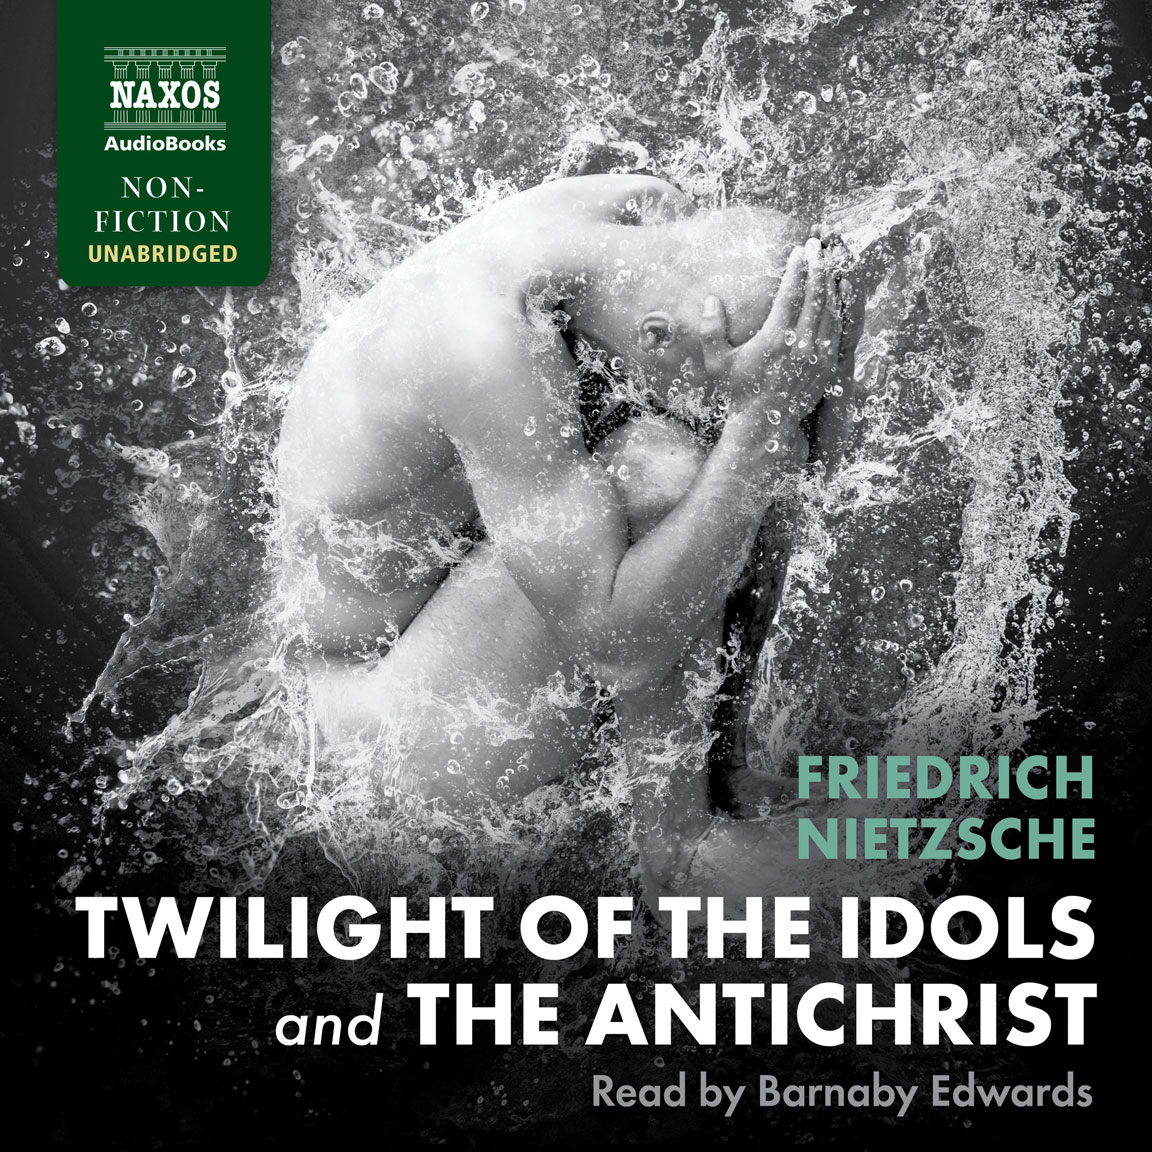 Twilight of the Idols and The Antichrist (unabridged)